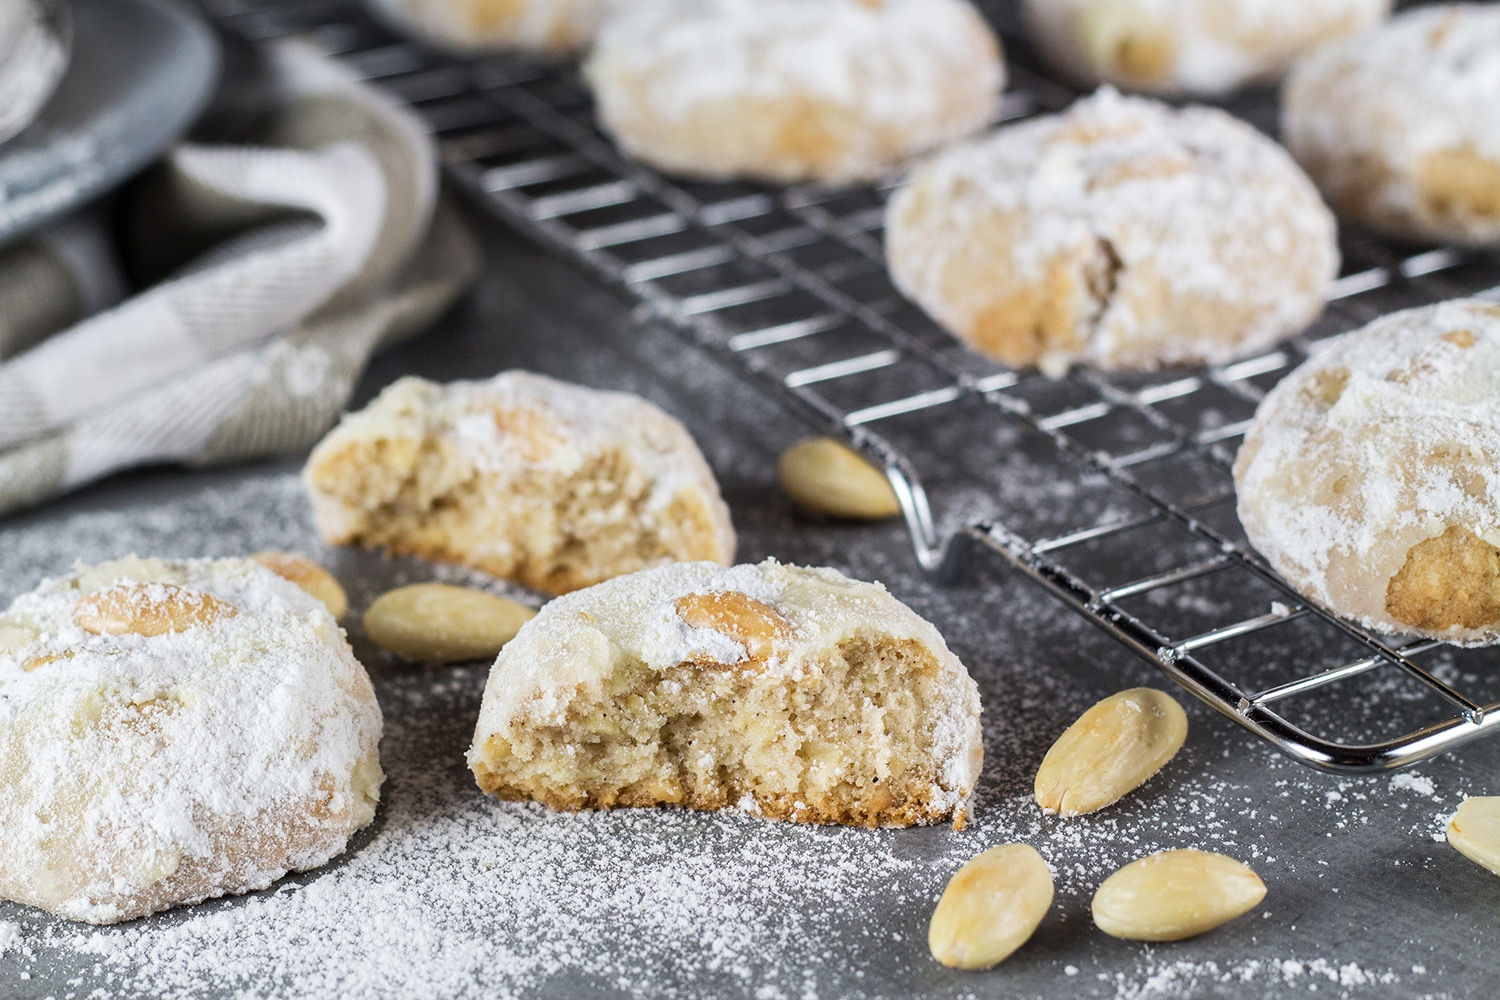 These Mexican Wedding Cookies are buttery, crumbly, nutty, and topped with whole almonds. Perfect with a mug of hot cocoa or a cup of milk, tea, or coffee! | cookingtheglobe.com